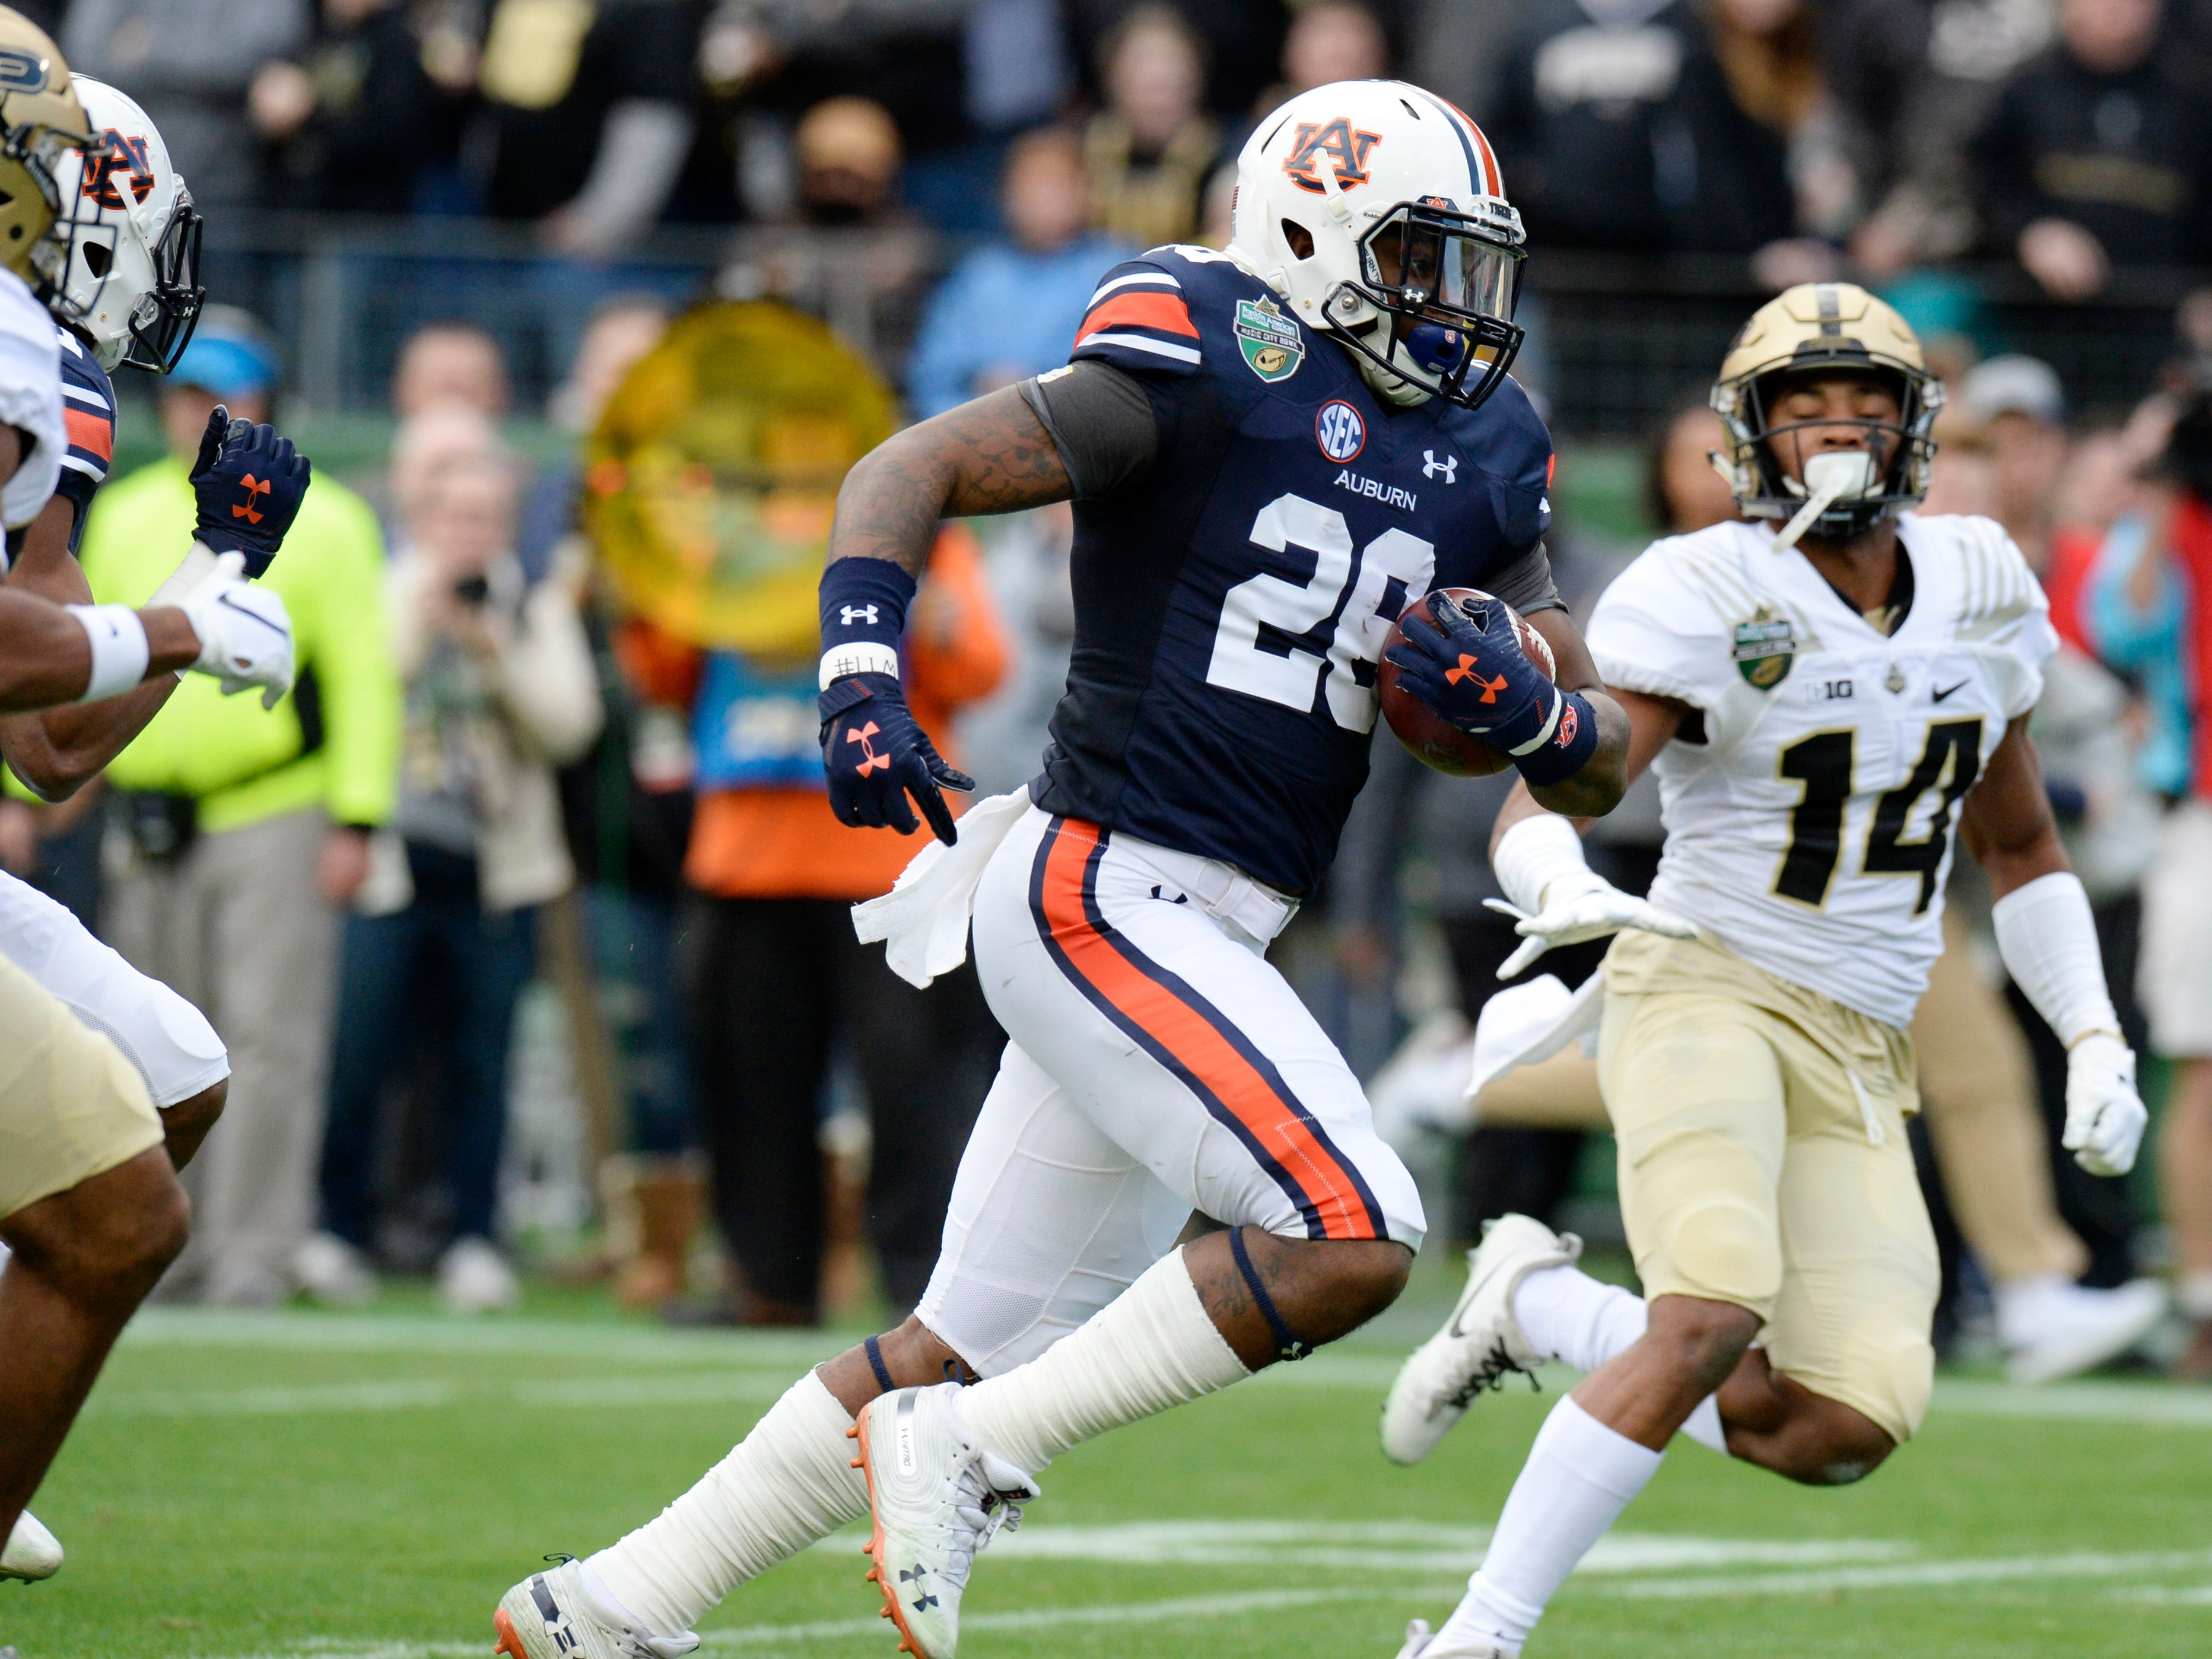 Auburn running back JaTarvious Whitlow (28) takes off on his 66-yard touchdown in the first quarter of the Music City Bowl NCAA college football game Friday, Dec. 28, 2018, at Nissan Stadium in Nashville, Tenn.